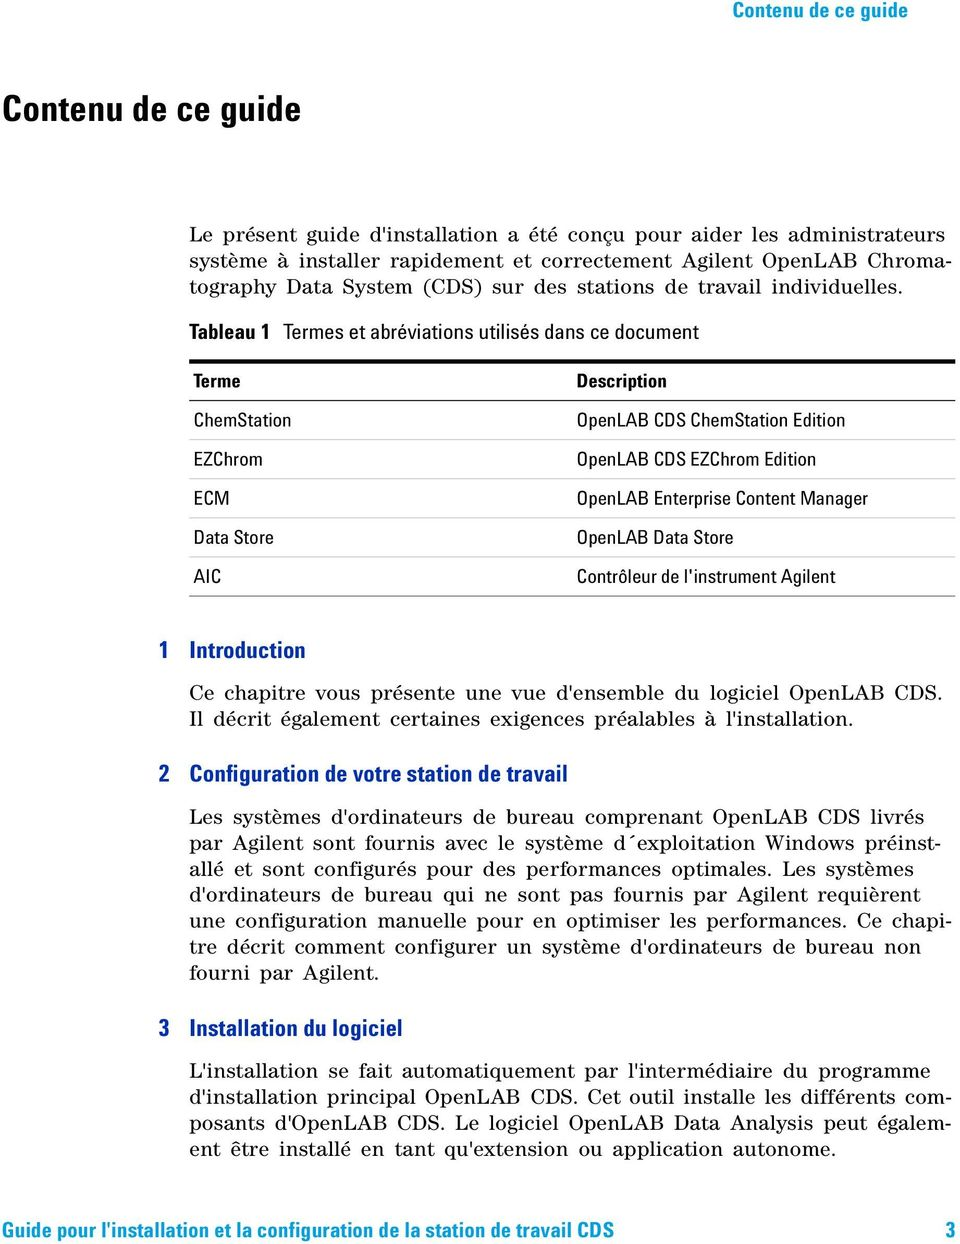 Tableau 1 Termes et abréviations utilisés dans ce document Terme ChemStation EZChrom ECM Data Store AIC Description OpenLAB CDS ChemStation Edition OpenLAB CDS EZChrom Edition OpenLAB Enterprise